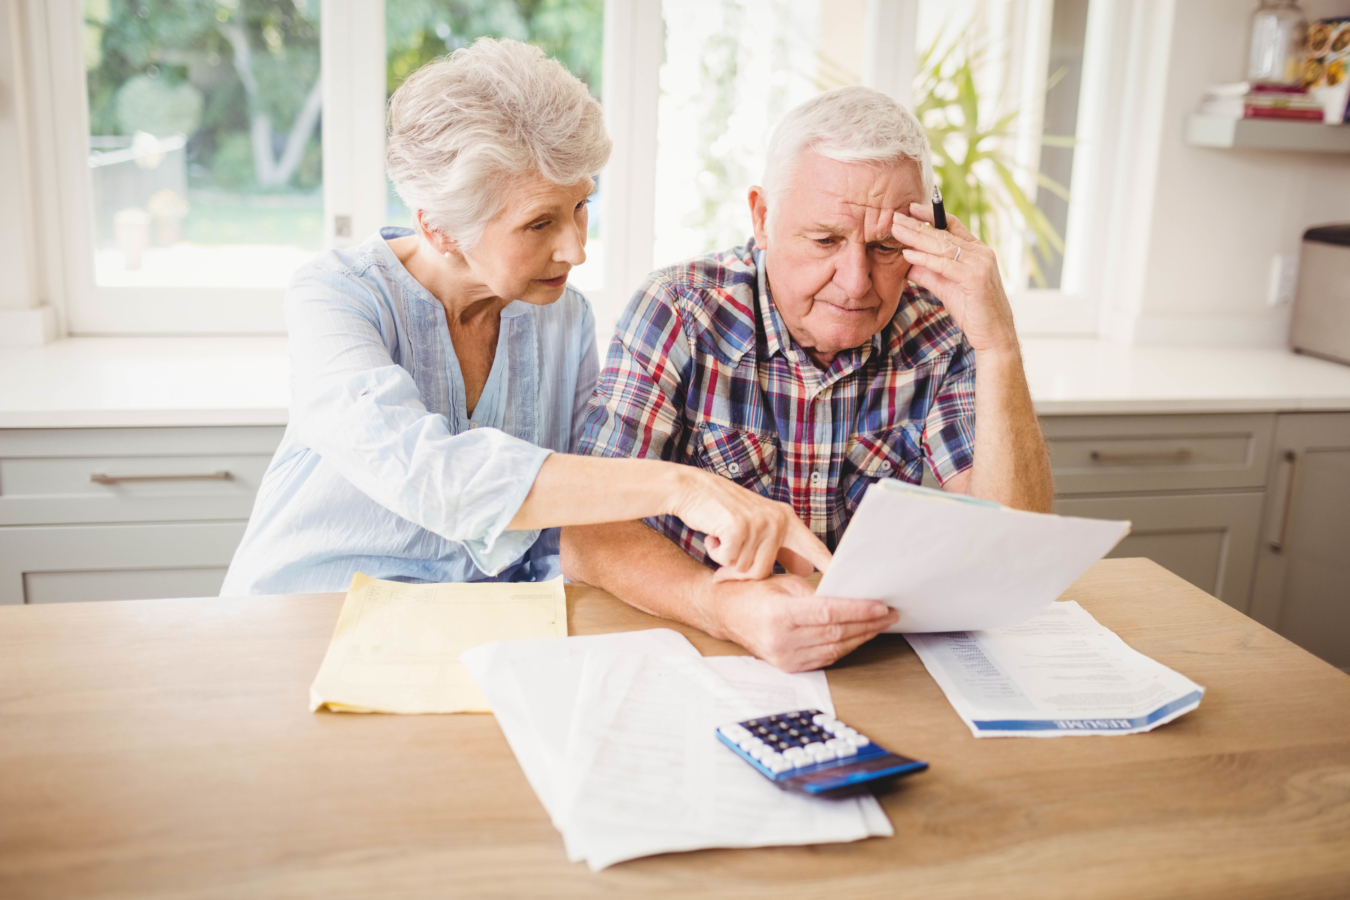 photodune-15037914-worried-senior-couple-checking-their-bills-at-home-l-e1468115927637